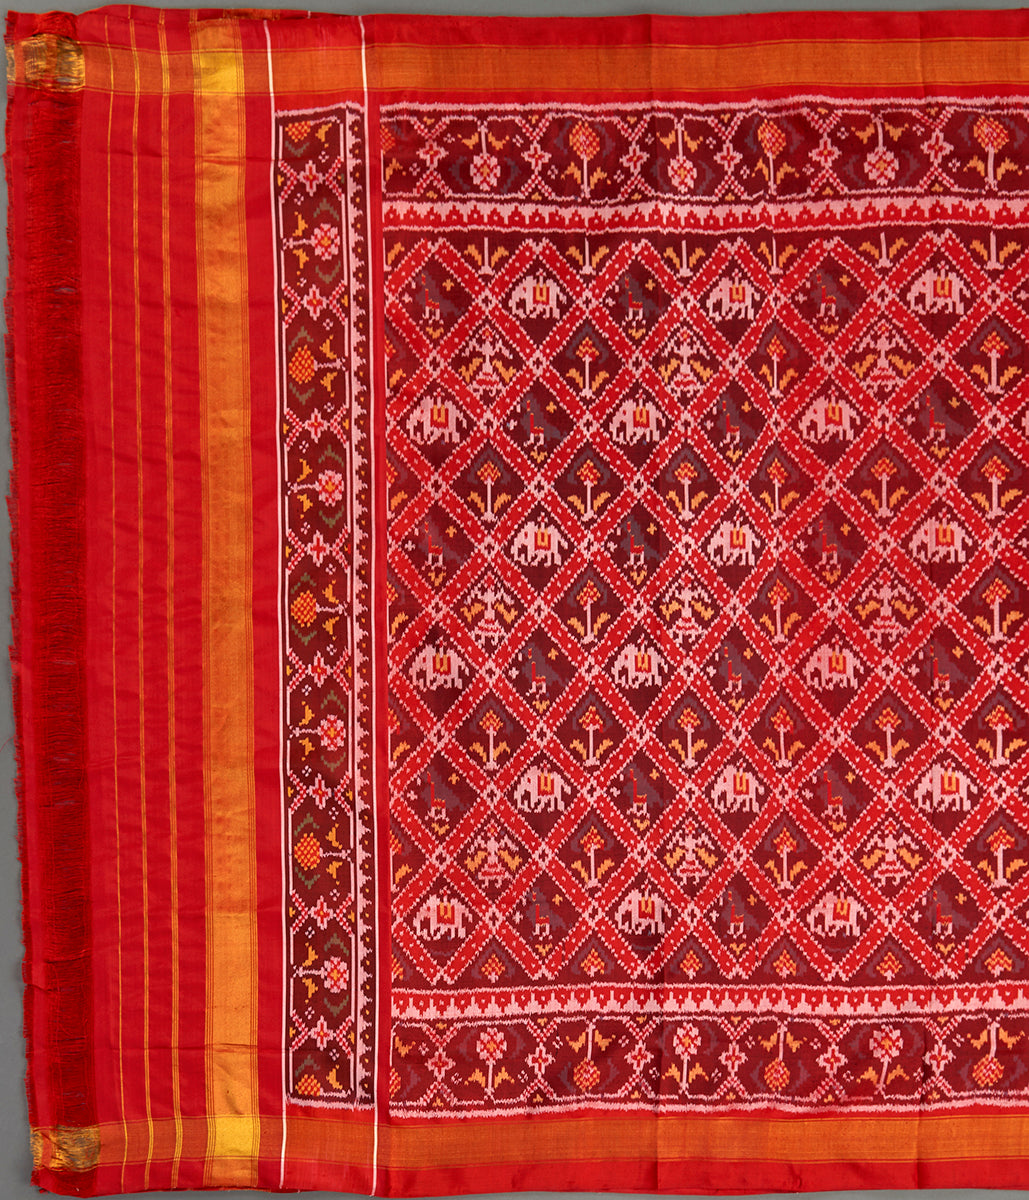 Handwoven Ikat Patola Dupatta in Mahroon and Brown